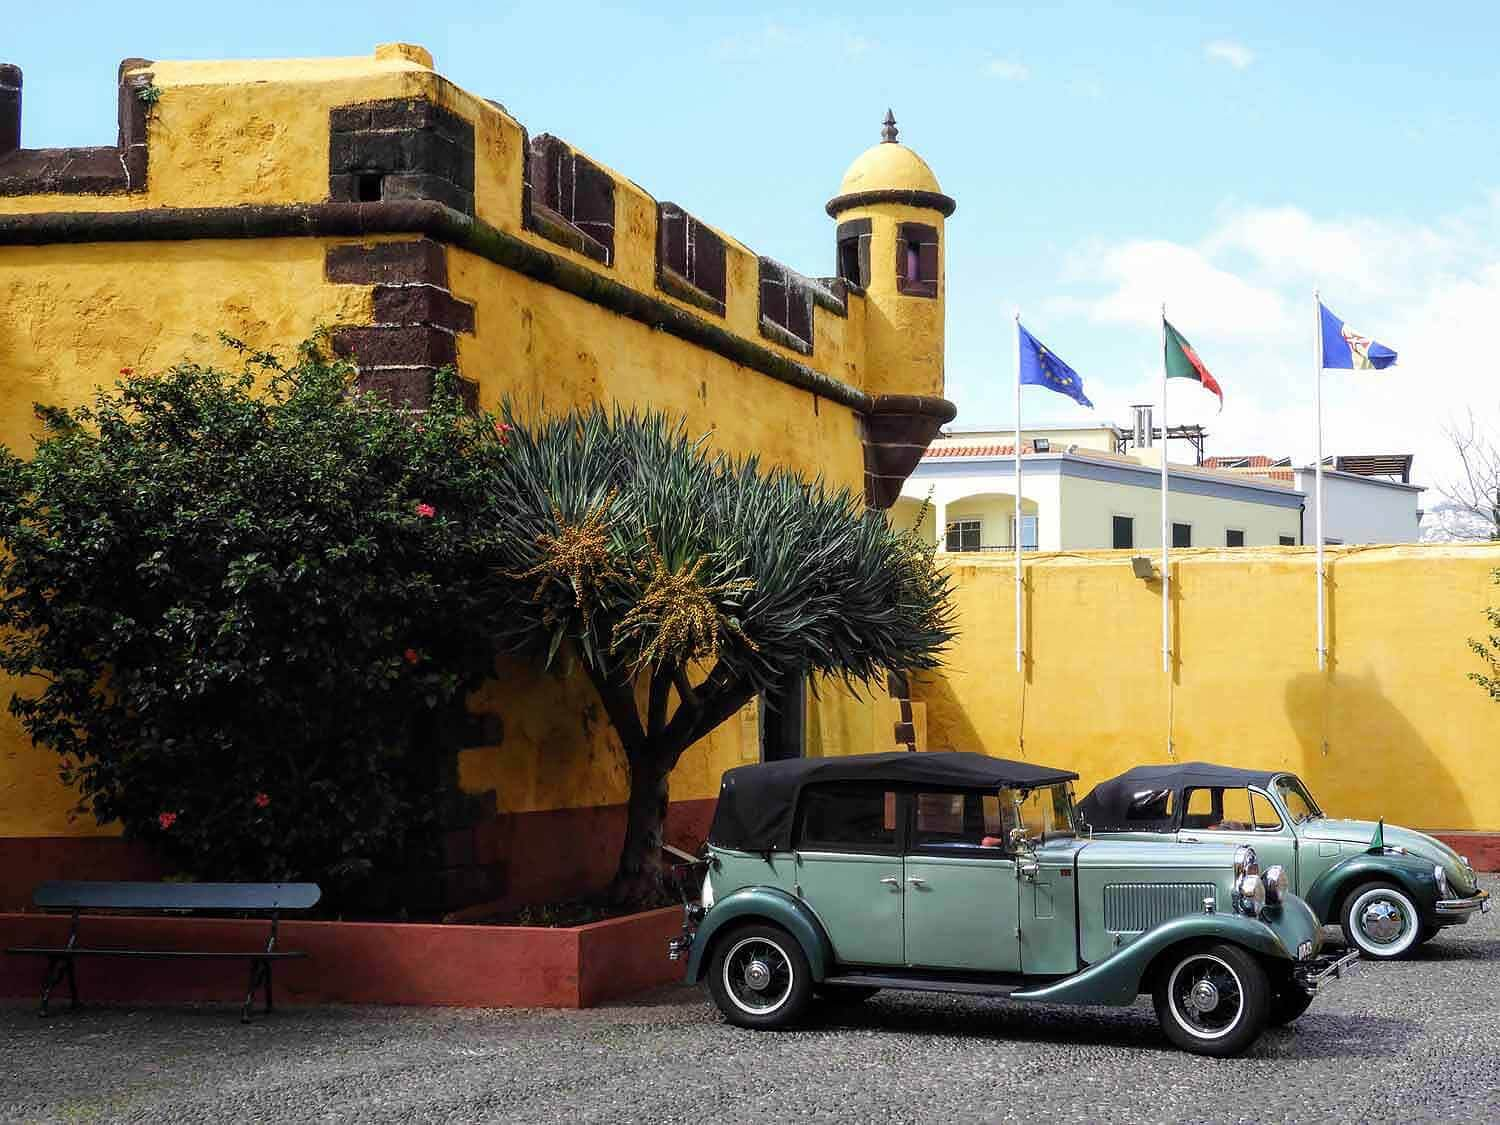 portugal-madeira-island-funchal-fort-sao-tiago-old-classic-cars.jpg